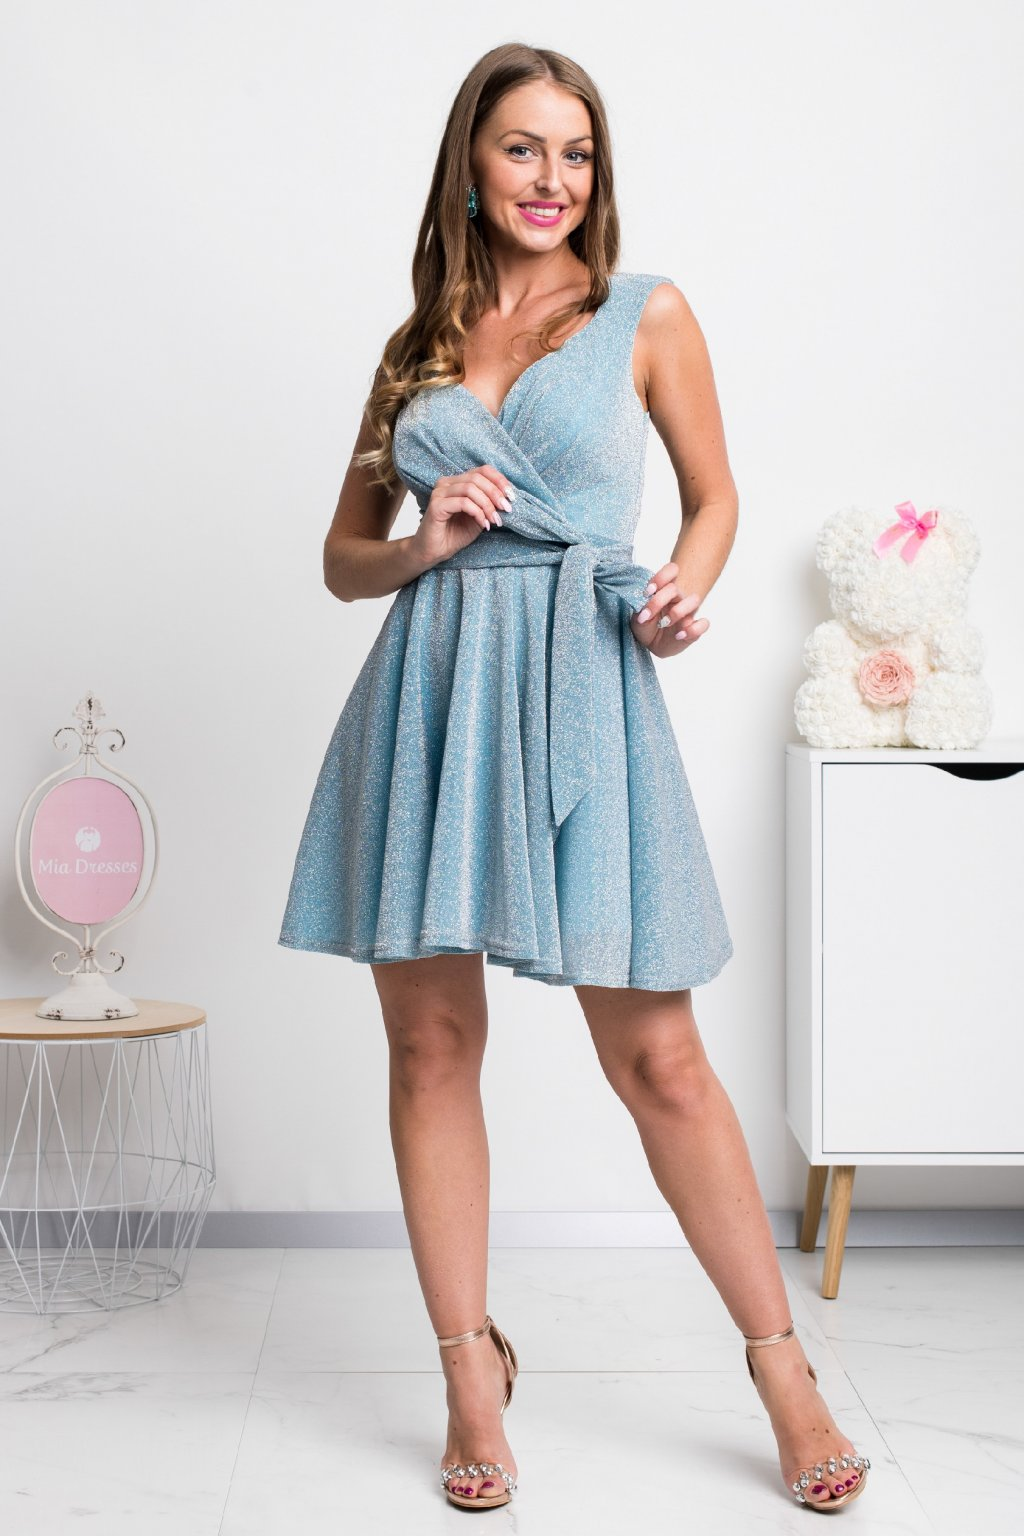 Light blue glittery mini dress